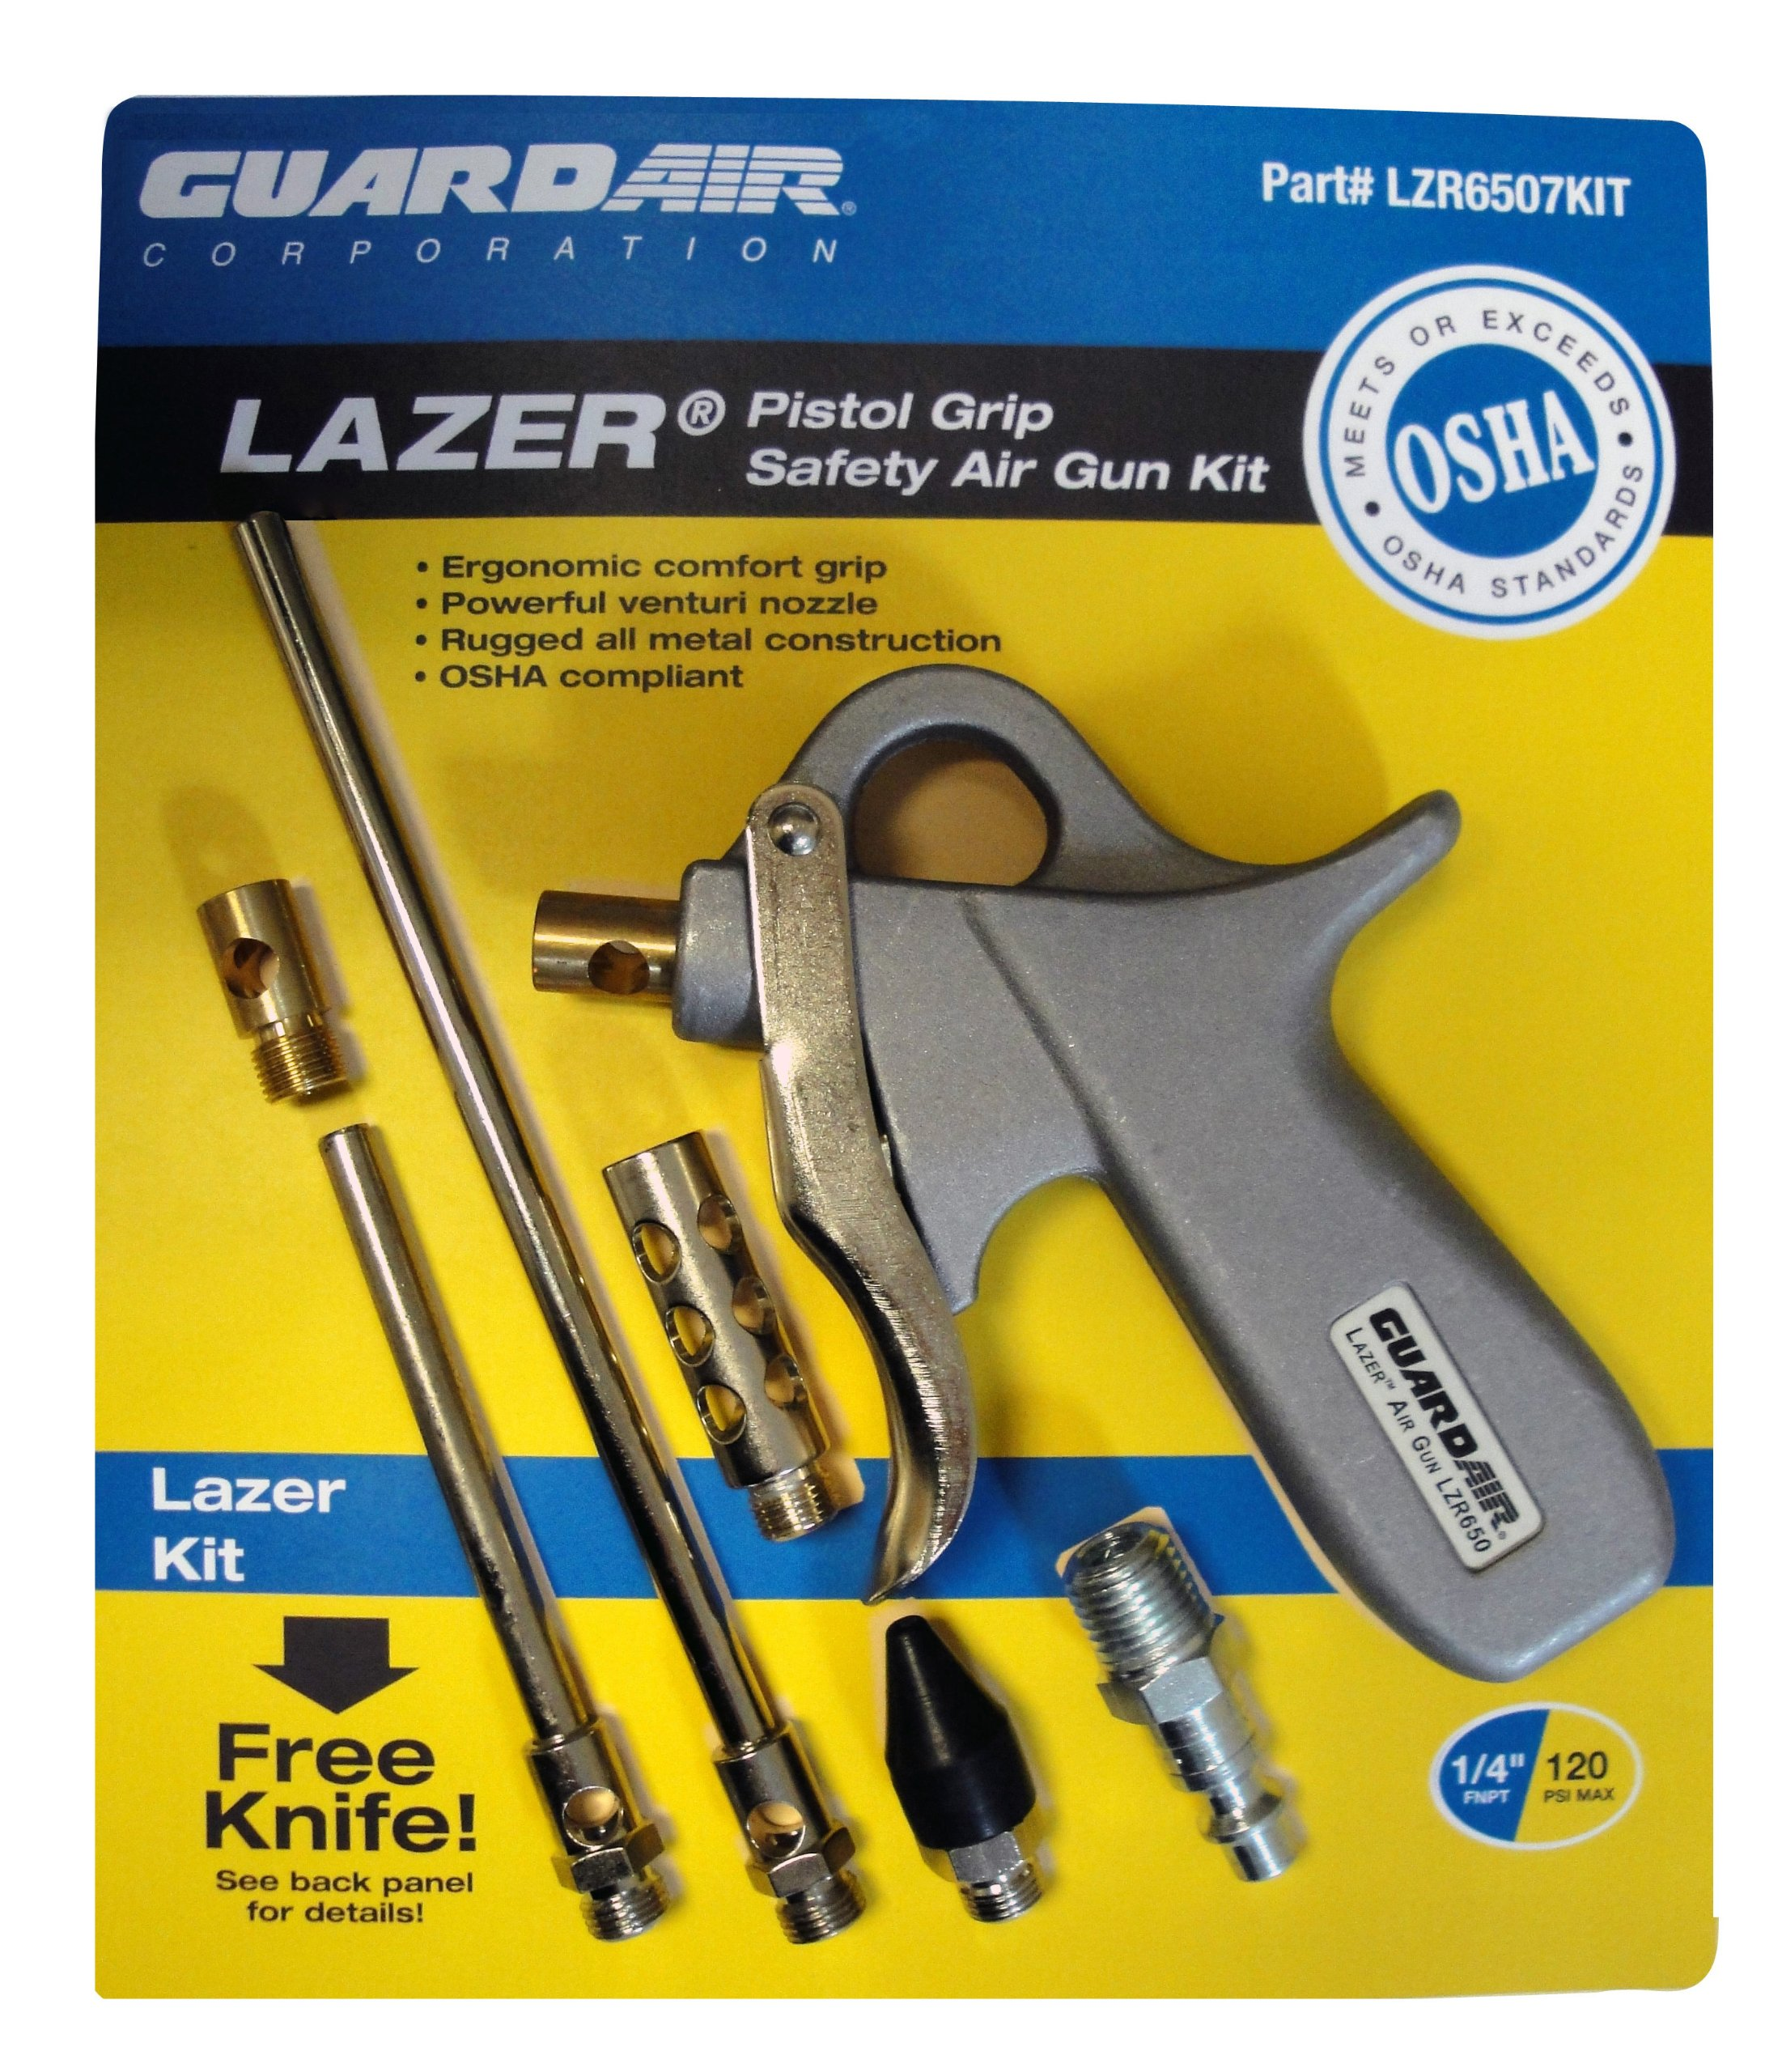 Guardair LZR6507KIT Lazer Pistol Grip Safety Air Gun Kit